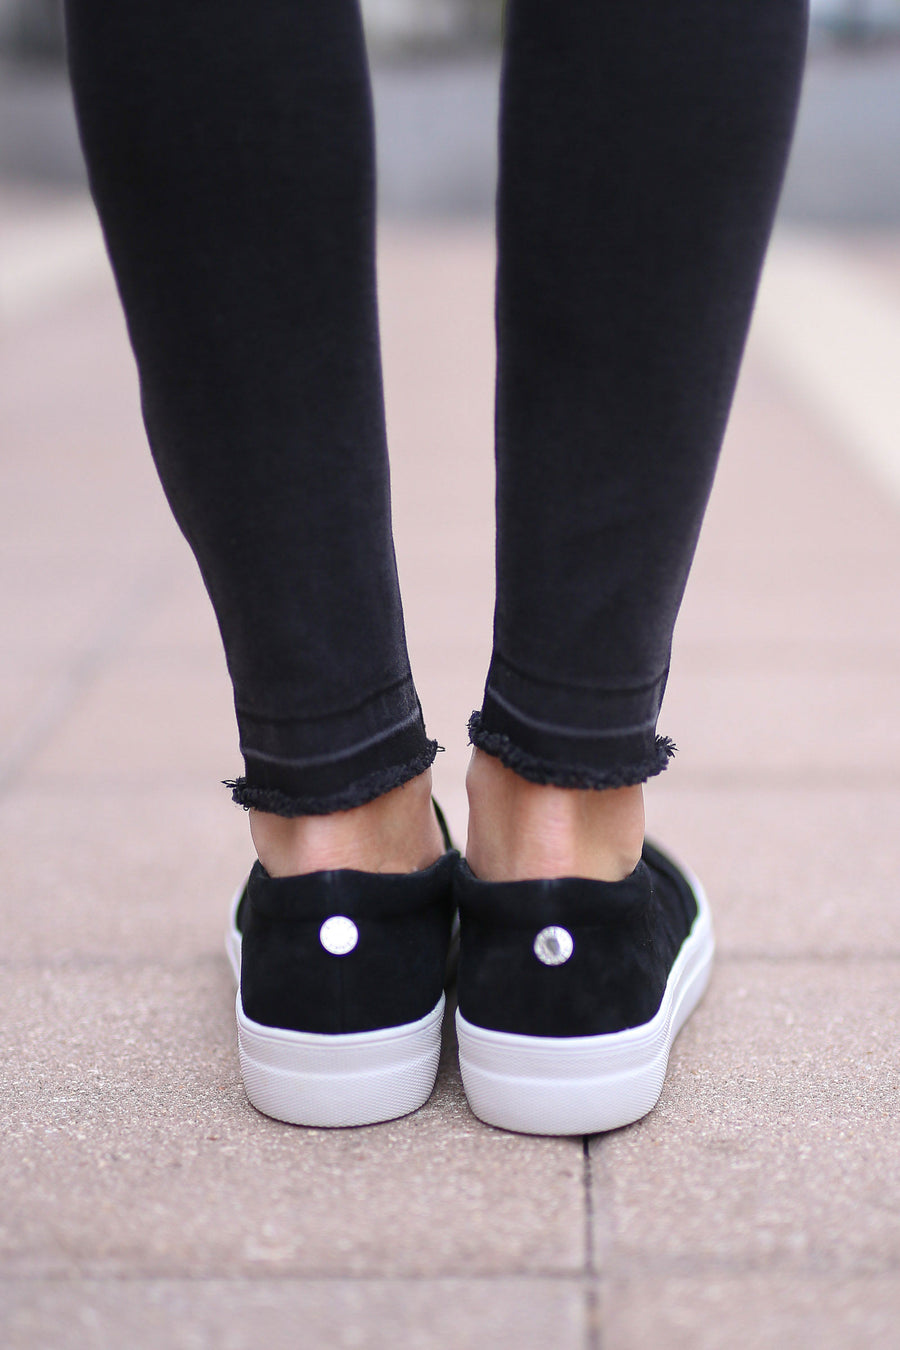 STEVE MADDEN Chris's Favorite Sneakers - black slip on sneakers, Closet Candy Boutique 1